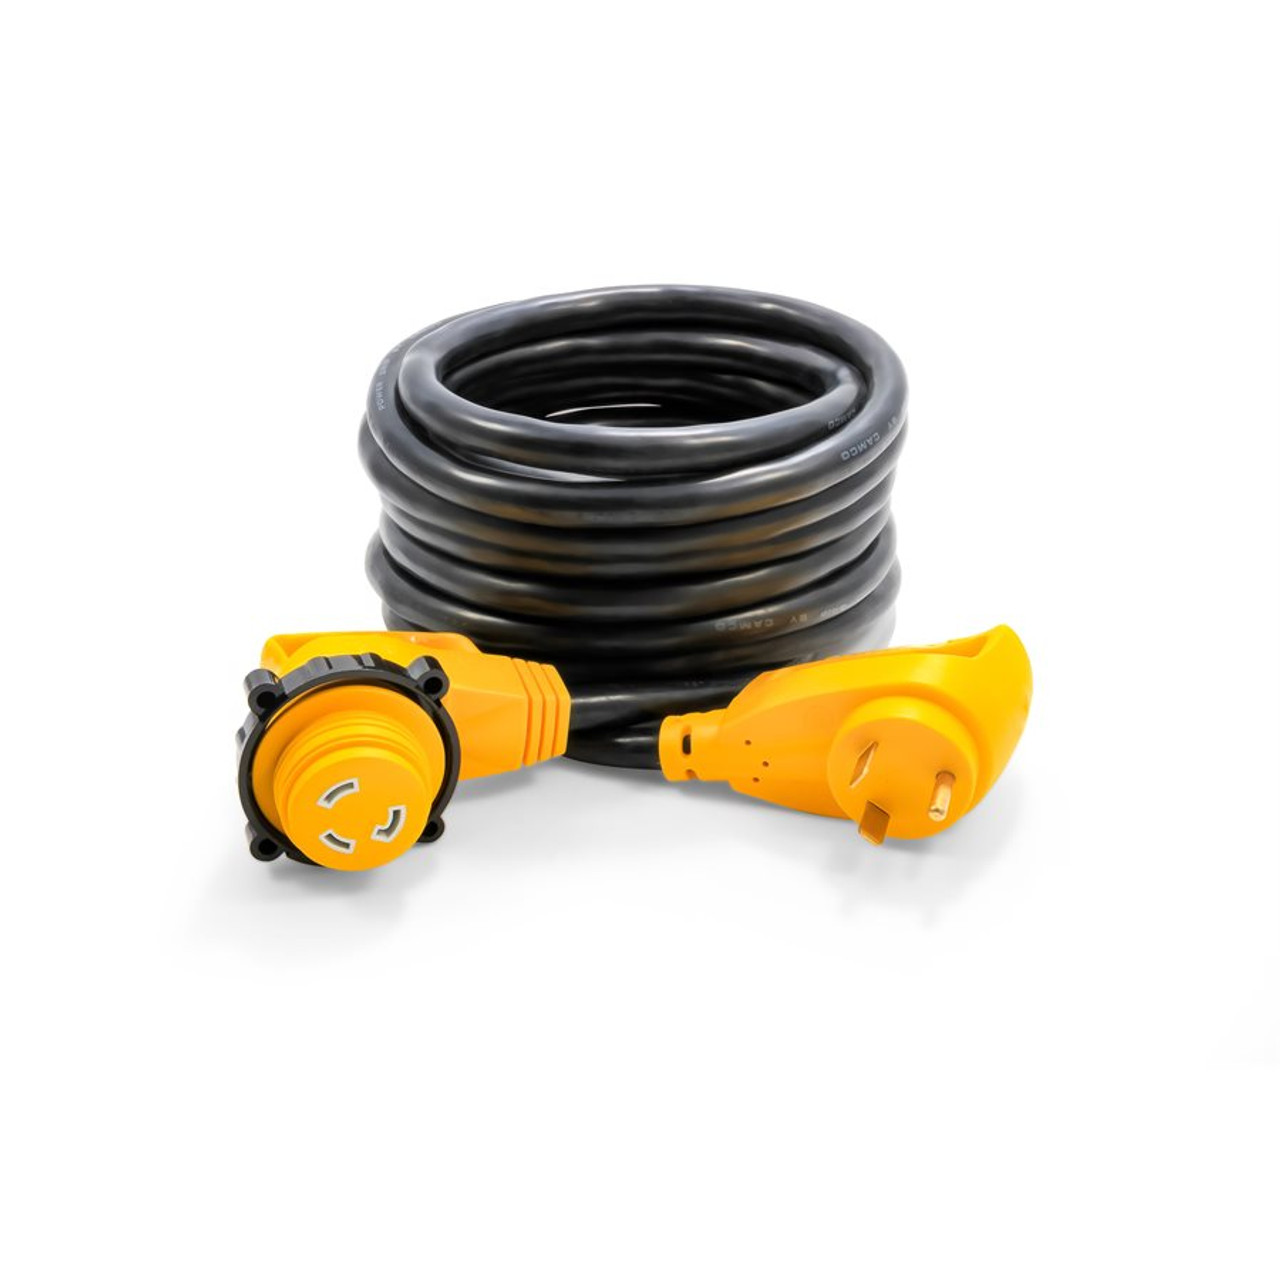 Camco 30amp Power Grip 25 Extension Cord Locking Adapter Portsmouth Trailer Supply